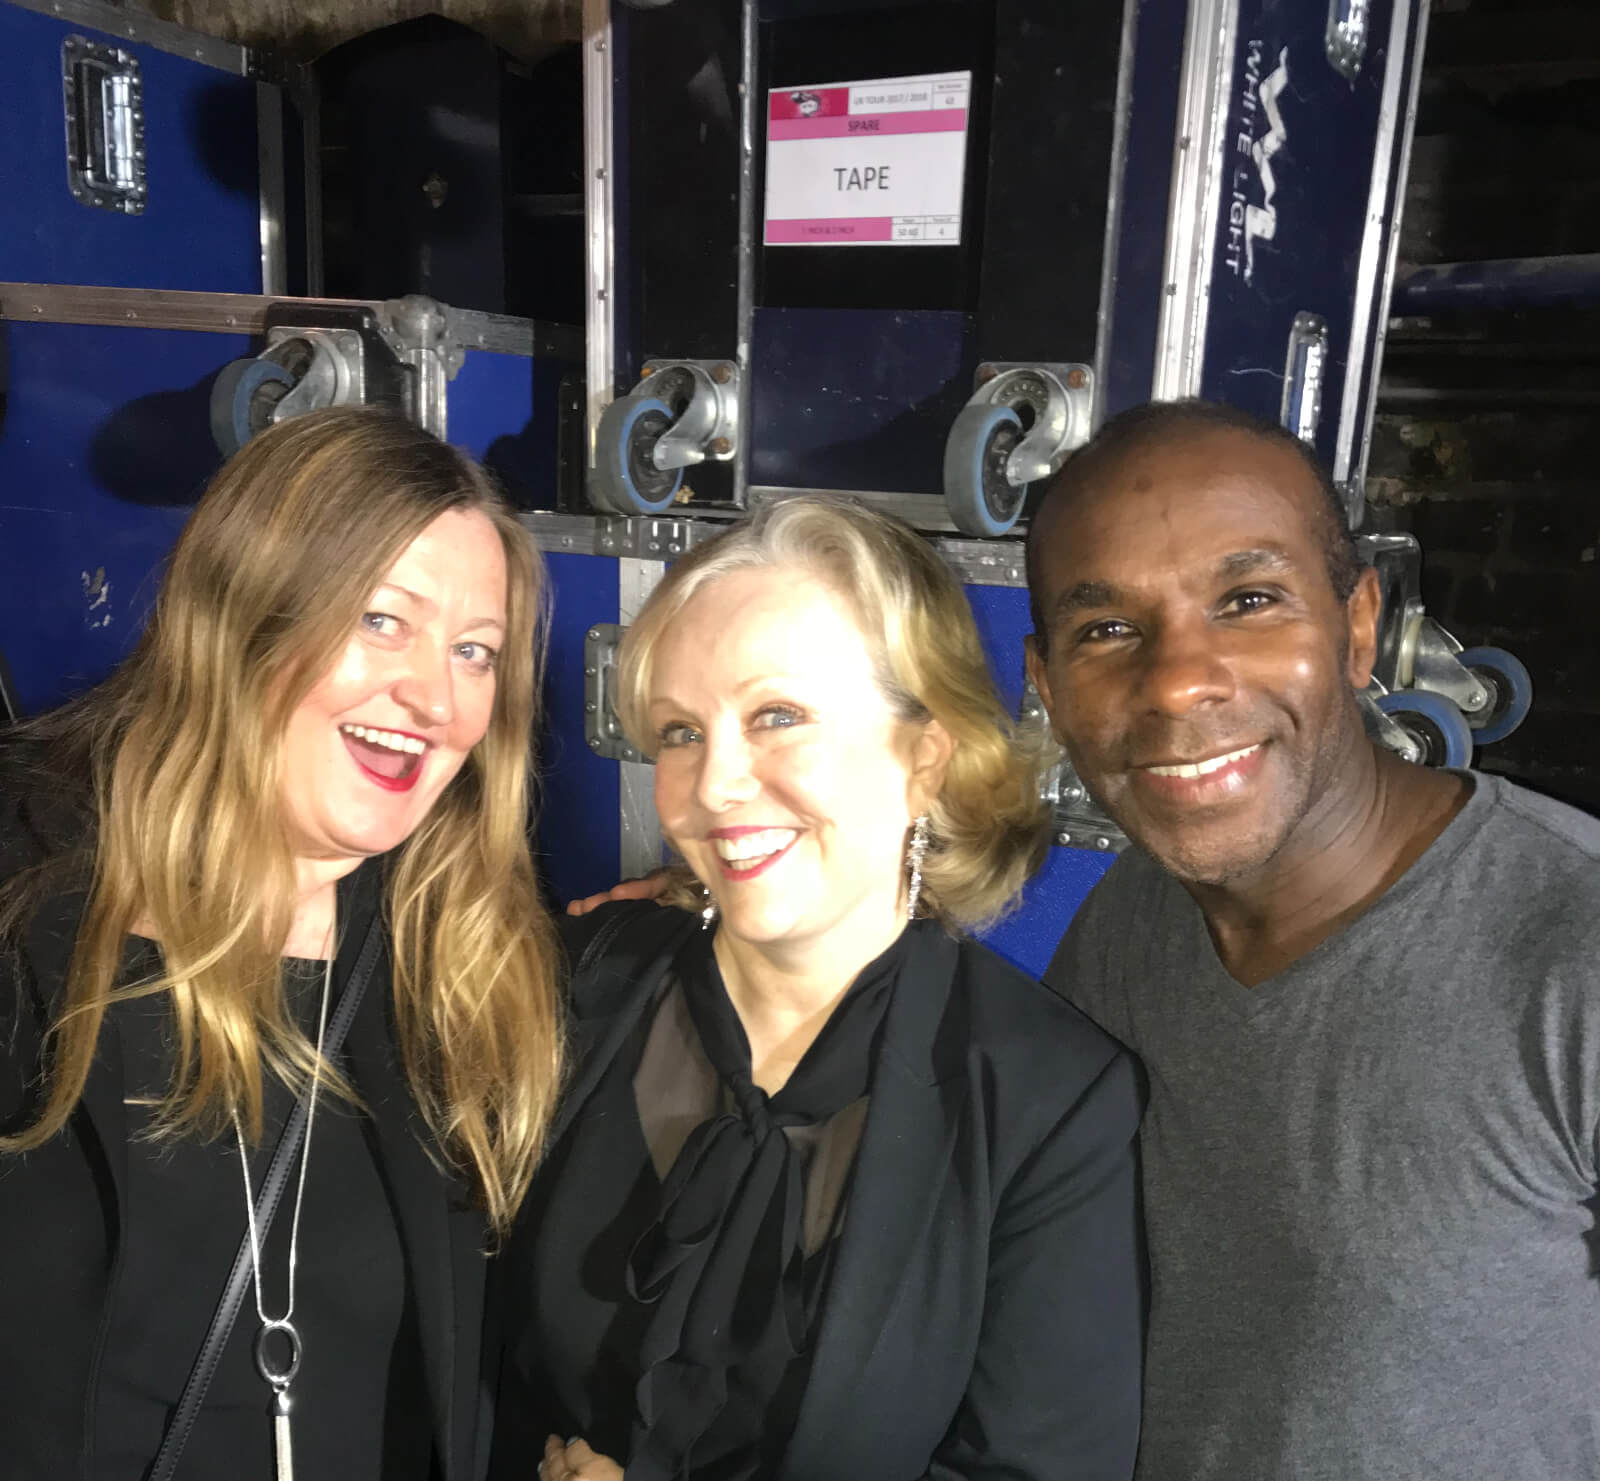 Casting Director Jill Green, Director Susan Stroman and Associate Choreographer Richard Pitt. They are backstage in front of blue equipment boxes.